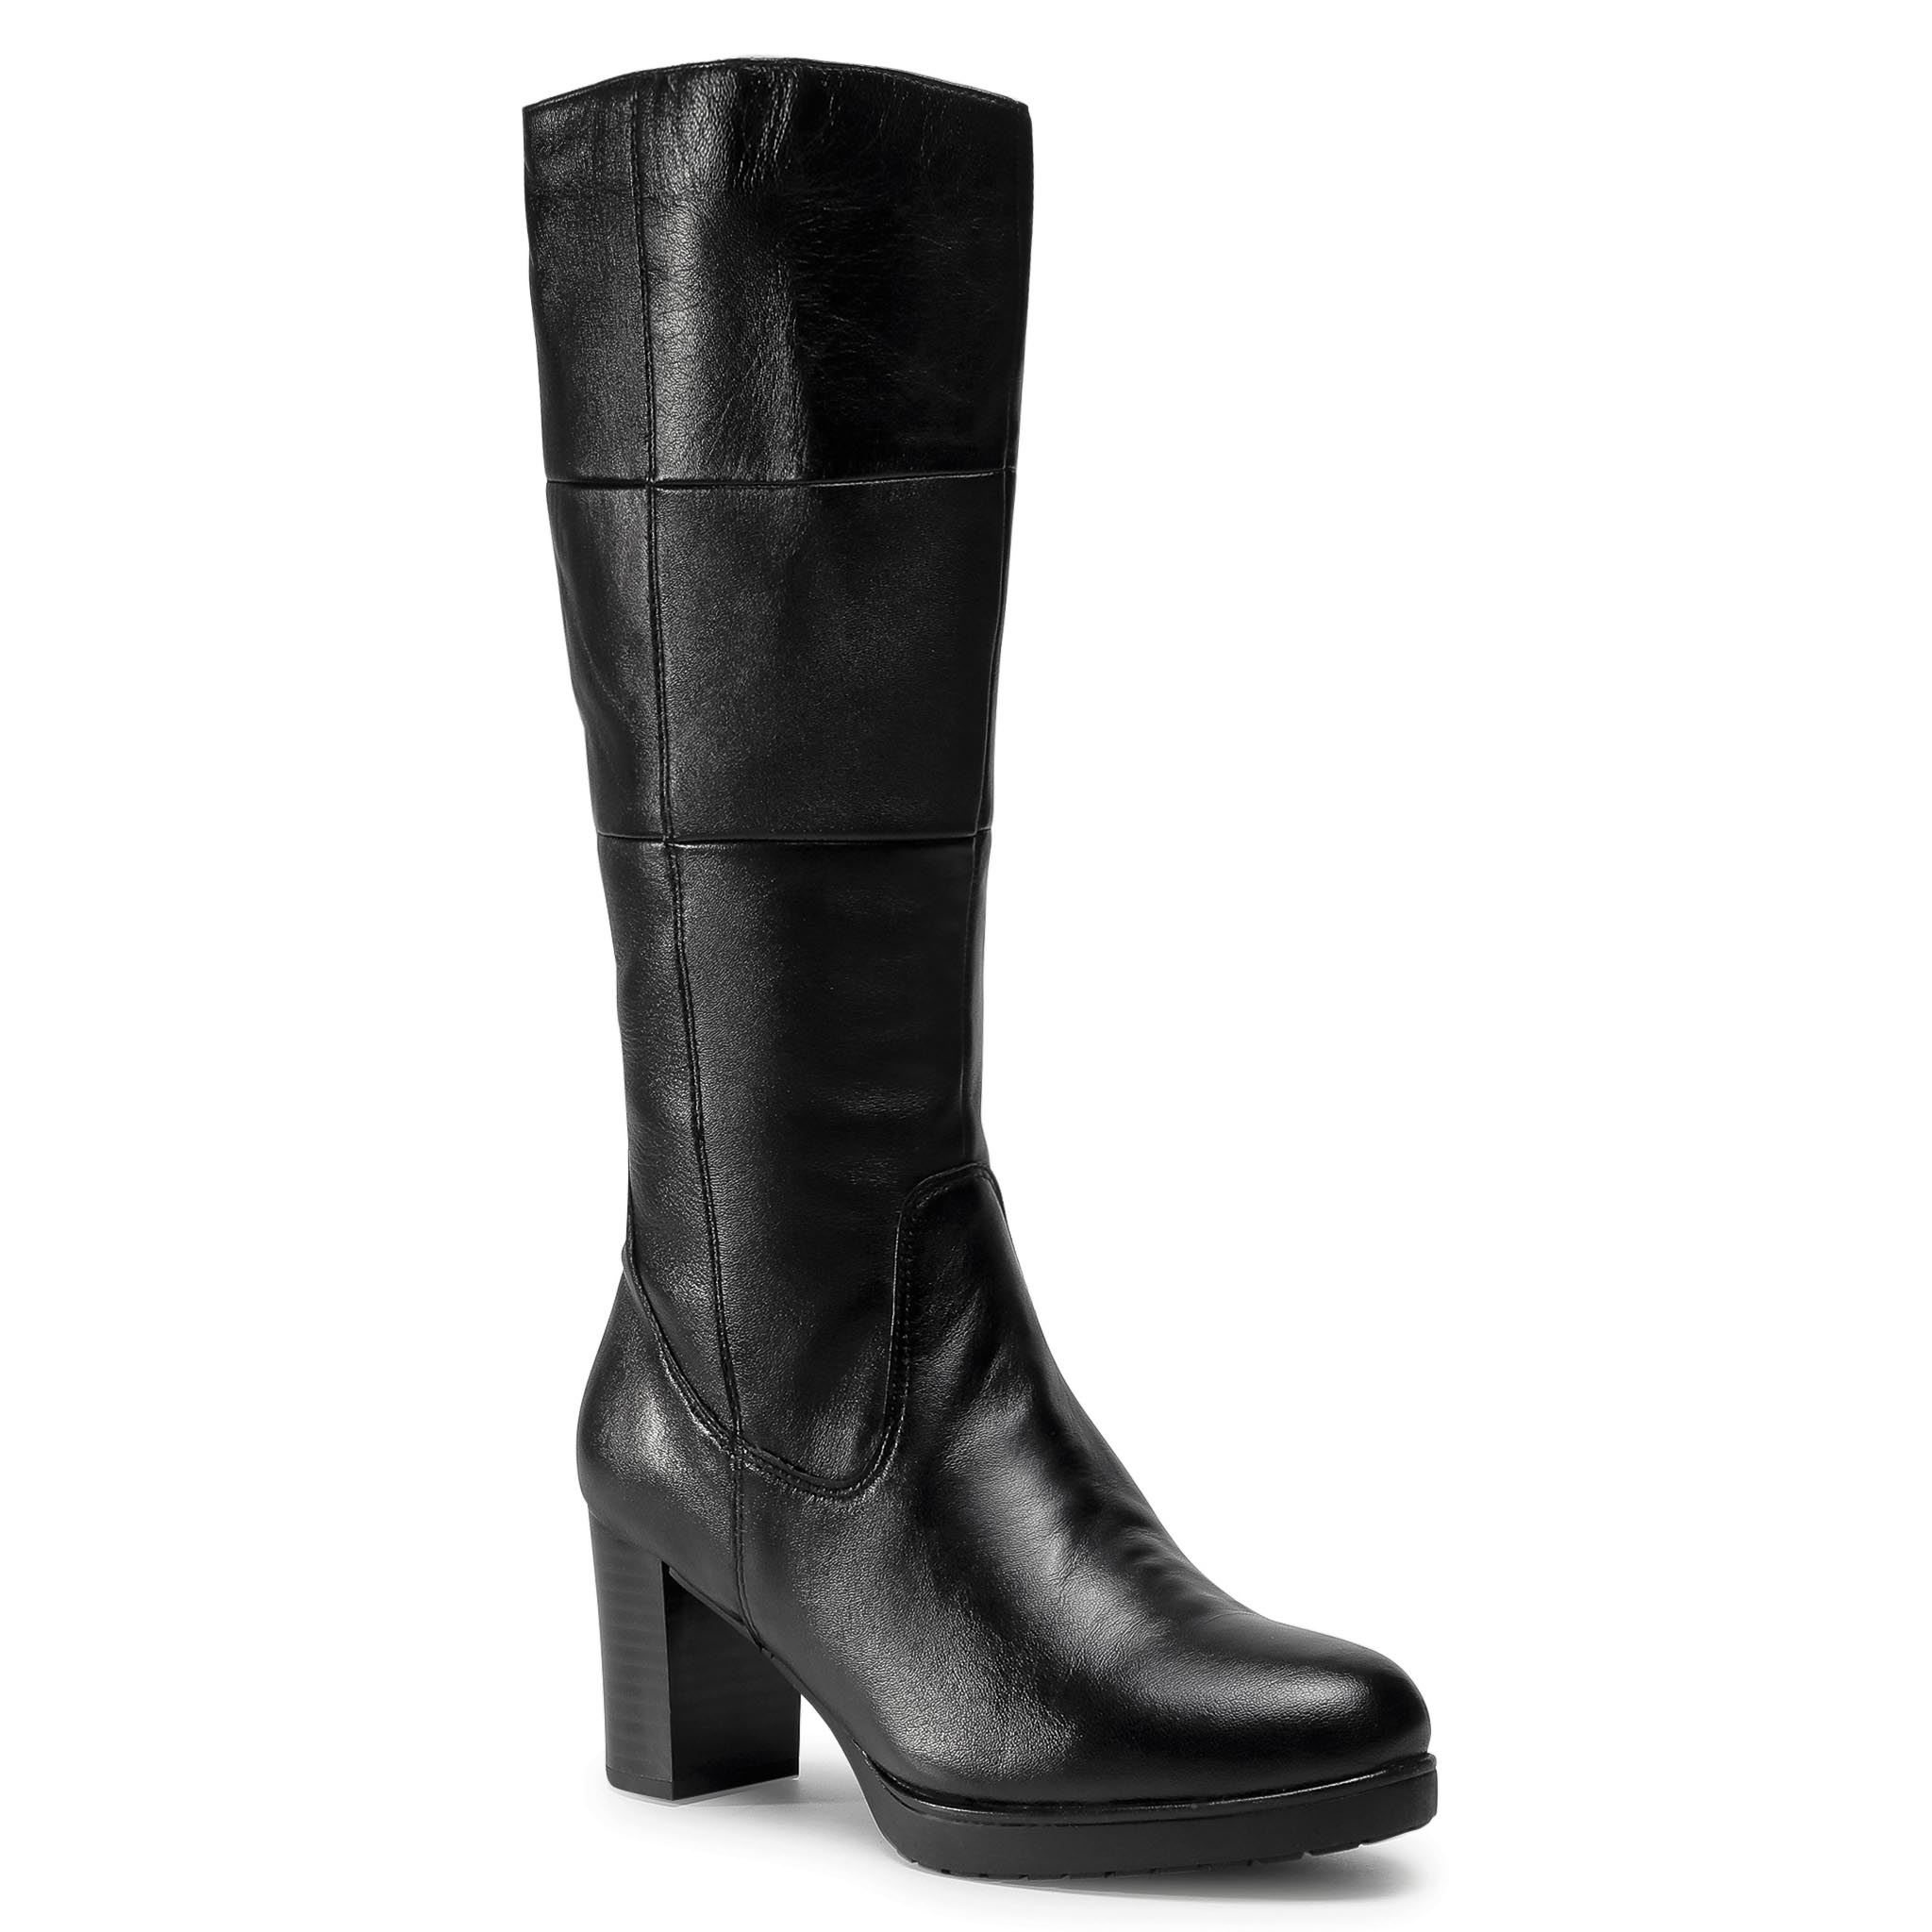 Image of Stiefel CAPRICE - 9-25610-25 Black Soft Nap 040